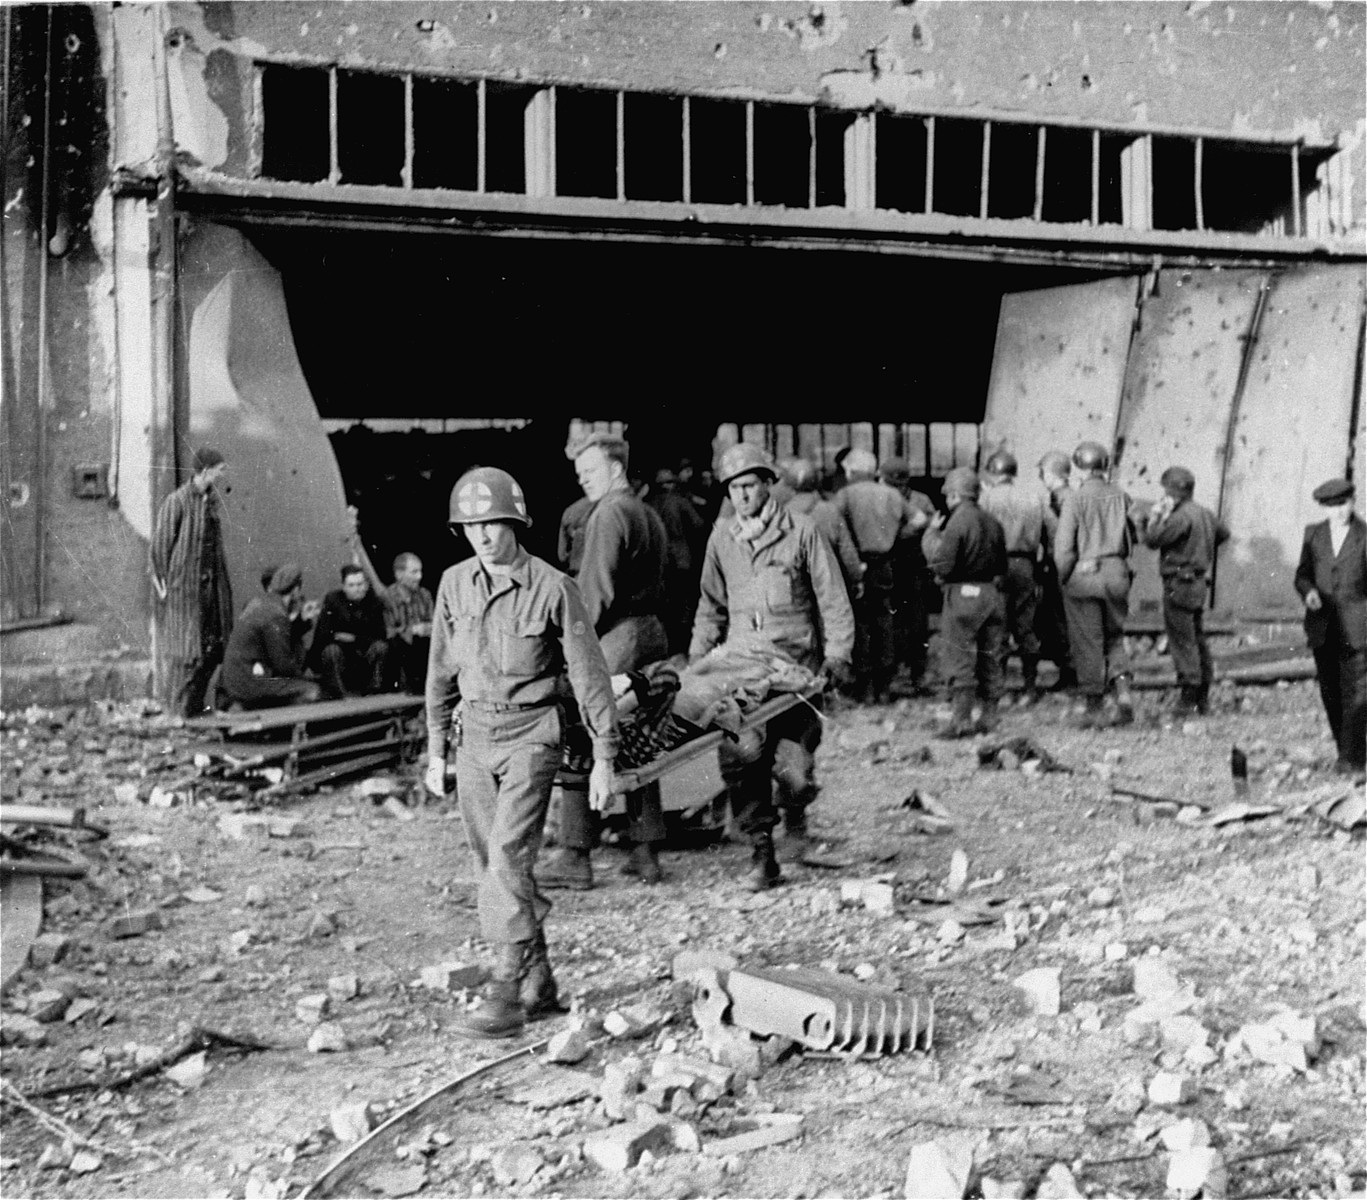 American medical personnel evacuate survivors for medical treatment at the Nordhausen concentration camp.